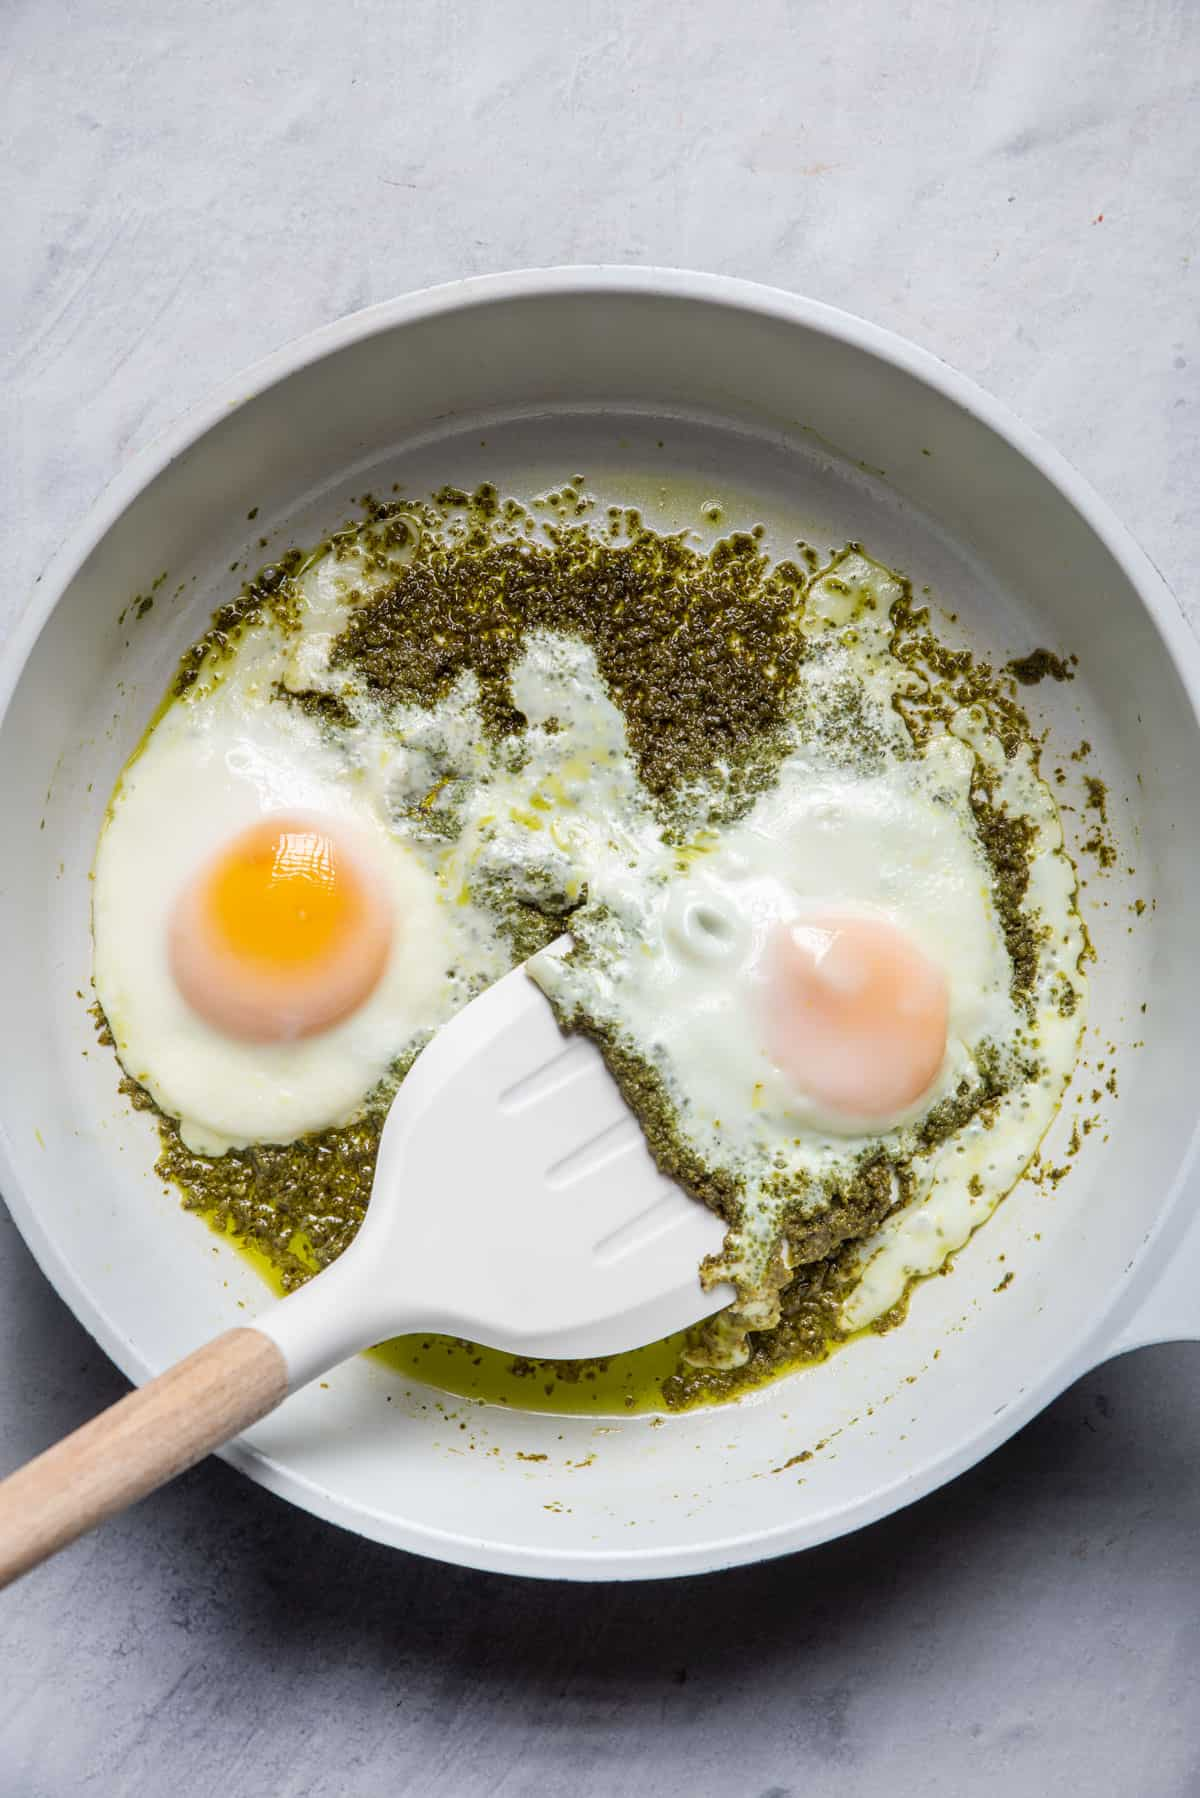 Spatula sliding under eggs after they're cooked